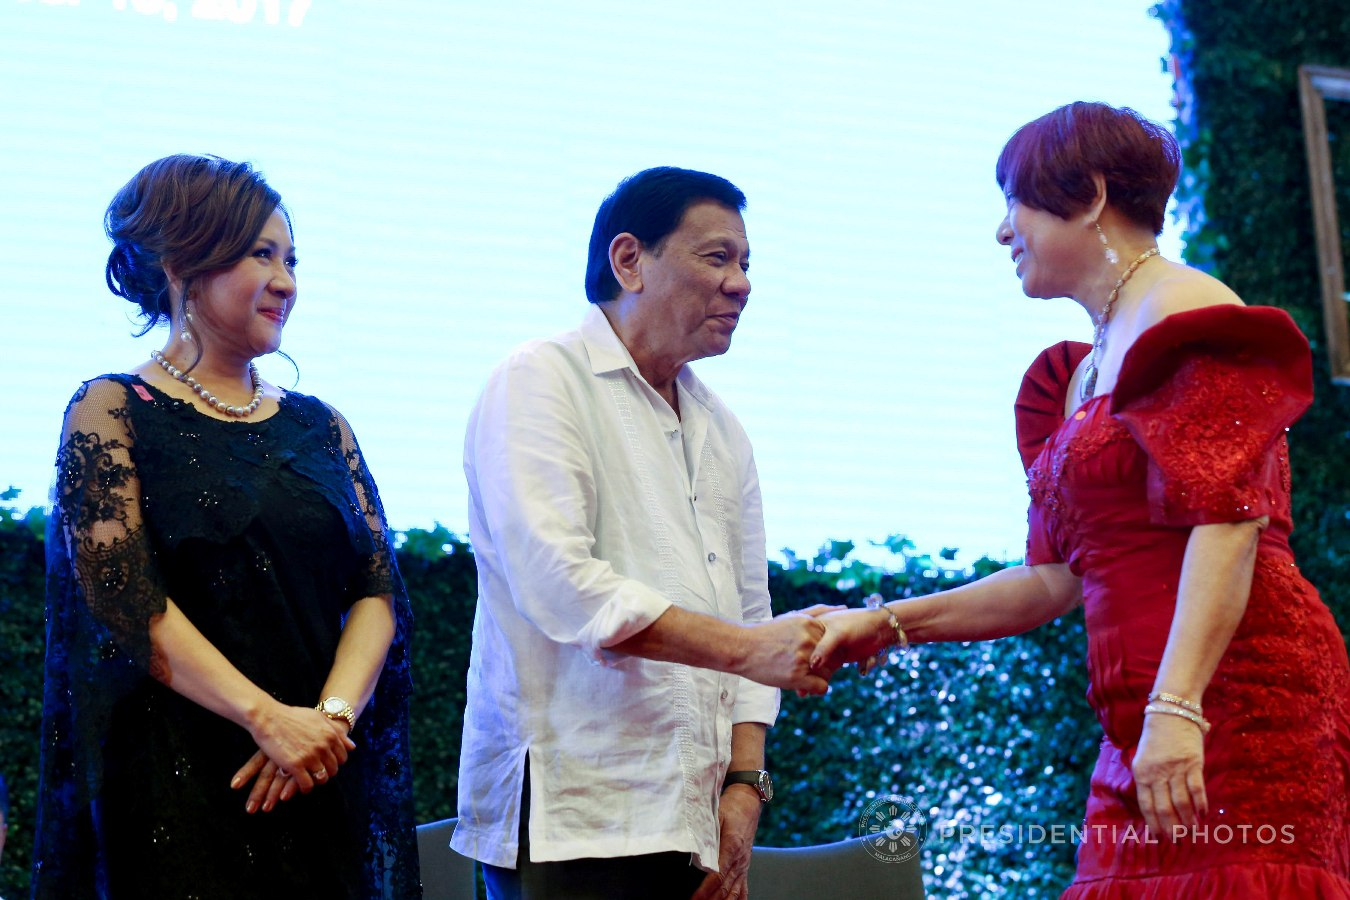 President Rodrigo Roa Duterte shows a gesture of appreciation to Zonta Club of Makati Central Business District Charter President Angelita Lee who is among the partners of the Anti-Trafficking OFW Movement (ATOM) recognized during the 7th anniversary of the public service show, 'Buhay OFW', at the Sofitel Philippine Plaza in Pasay City on October 18, 2017. Also in the photo is ATOM Founding Chairperson Marissa Del Mar. RICHARD MADELO/PRESIDENTIAL PHOTO